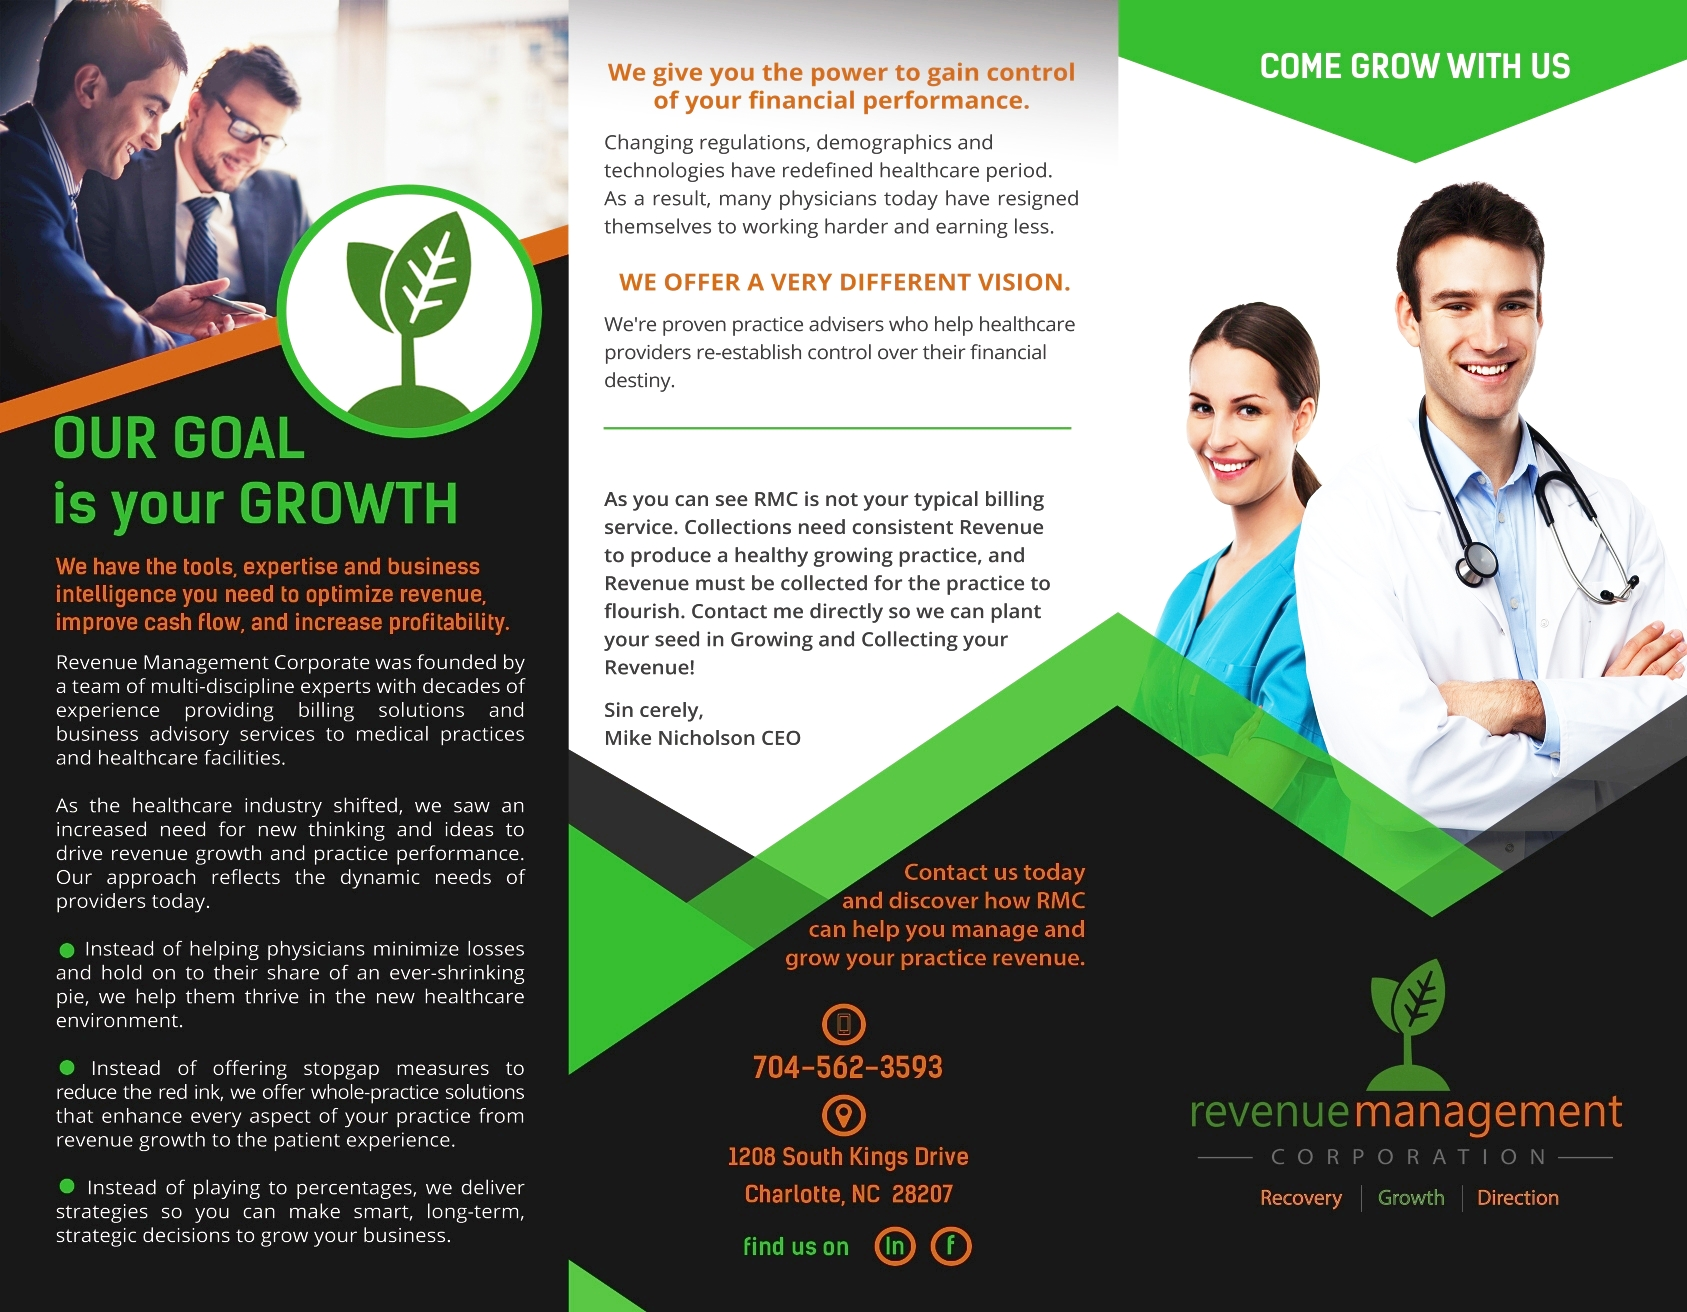 Come GrowWith Us - We have the tools, expertise and business intelligence you need to optimize revenue, improve cash flow and increase profitability. Contact Us Today.